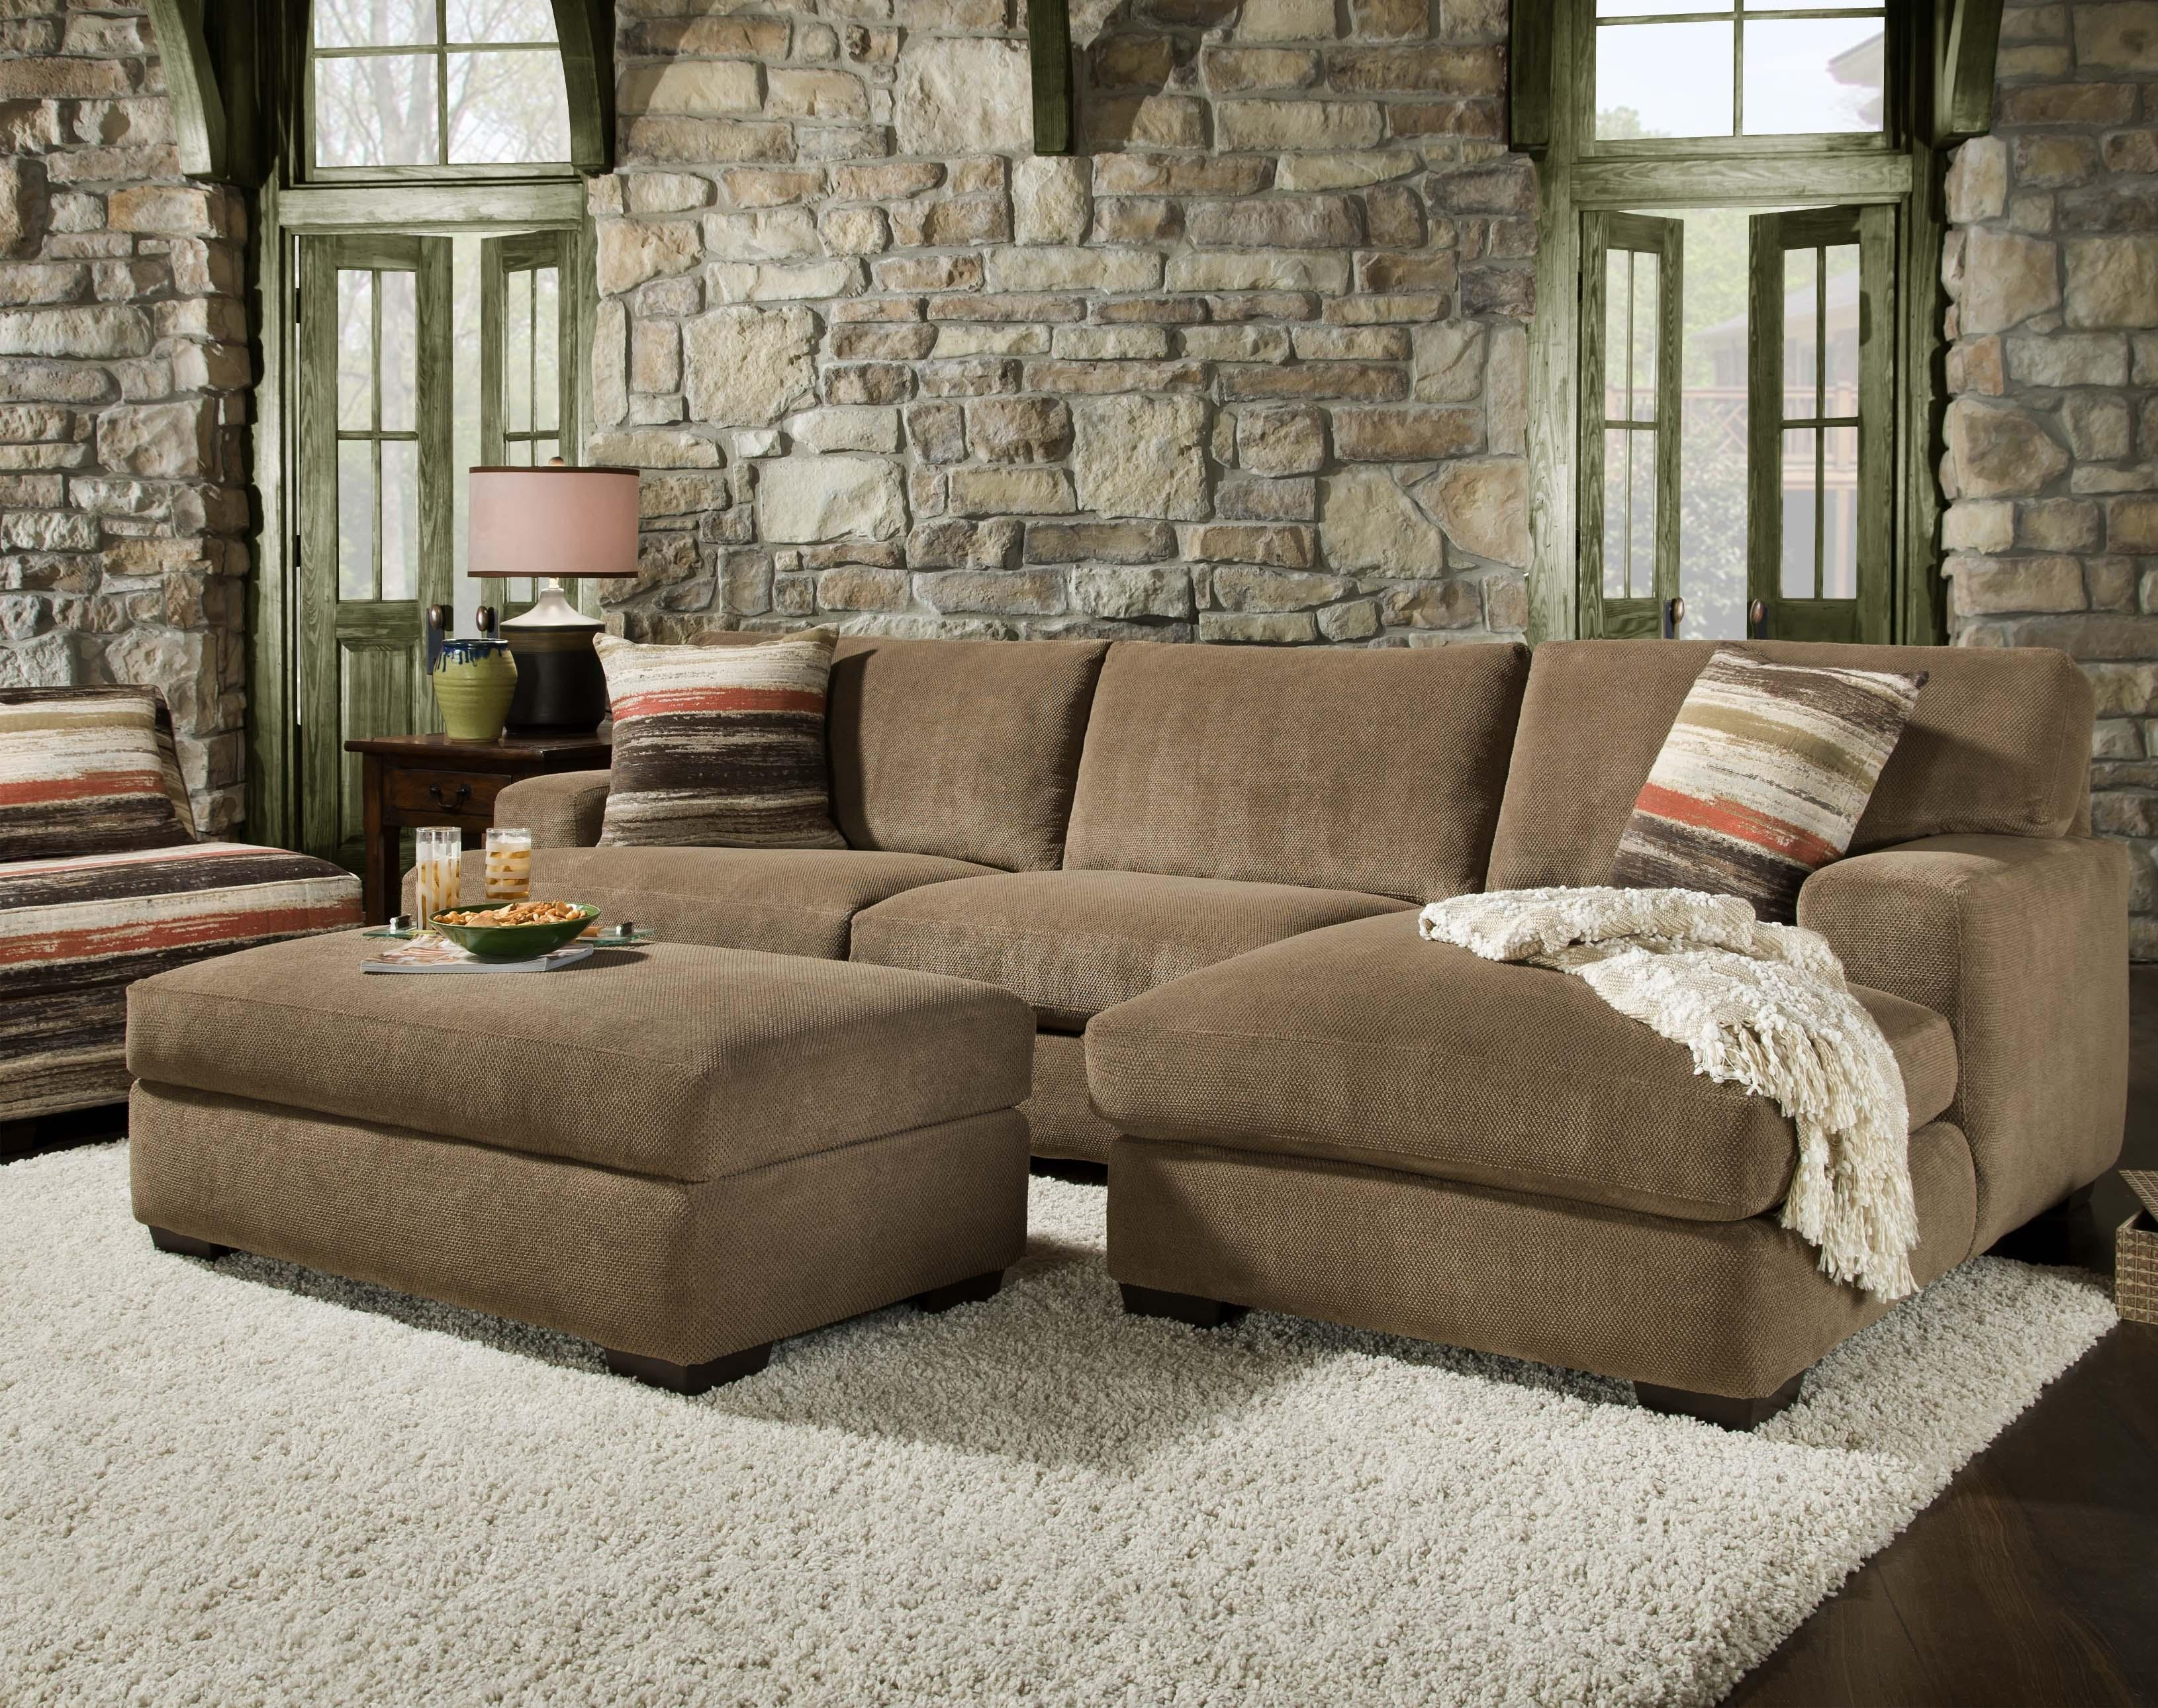 48B0 Small Sectional With Chaisecorinthian | Wolf Furniture Pertaining To Sectional Sofas For Small Doorways (View 1 of 10)